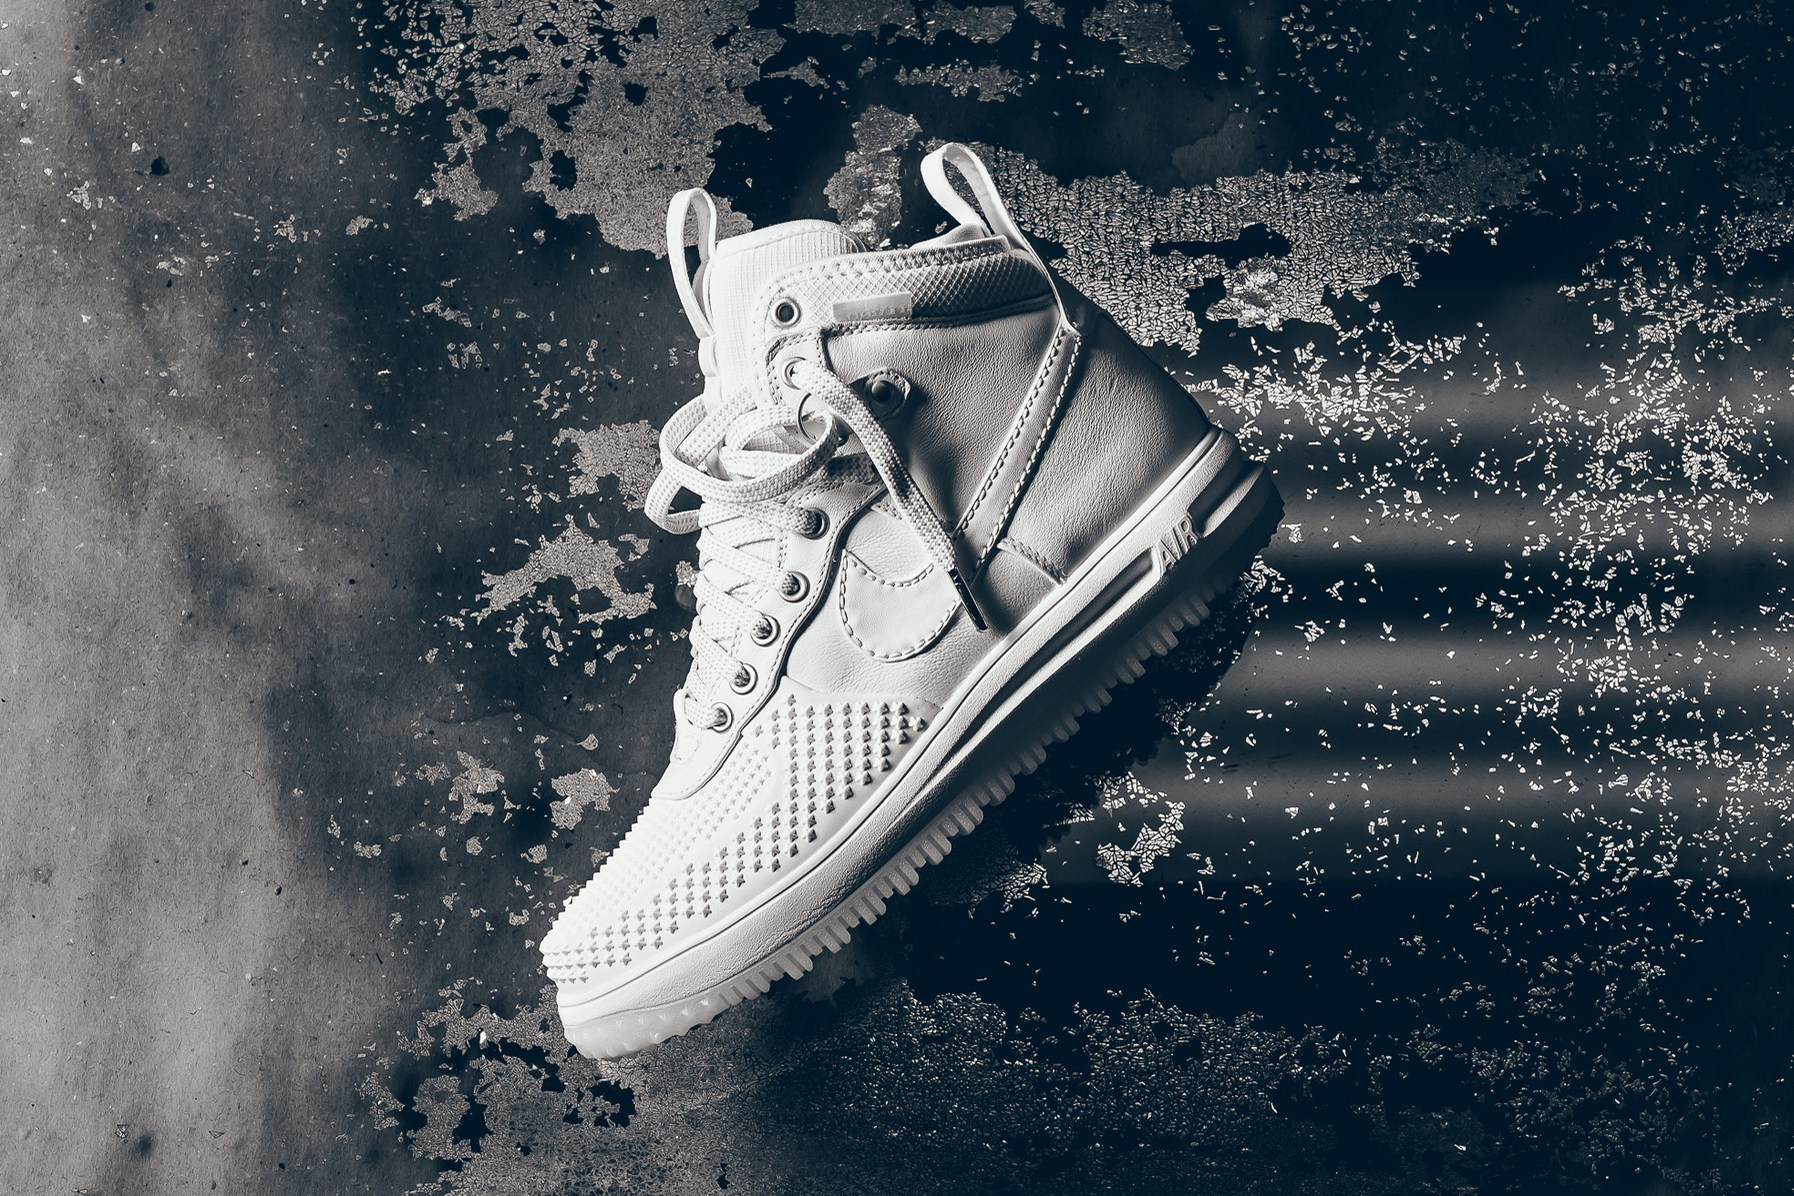 Nike Release New Colourway Of The Lunar Force 1 Duckboot